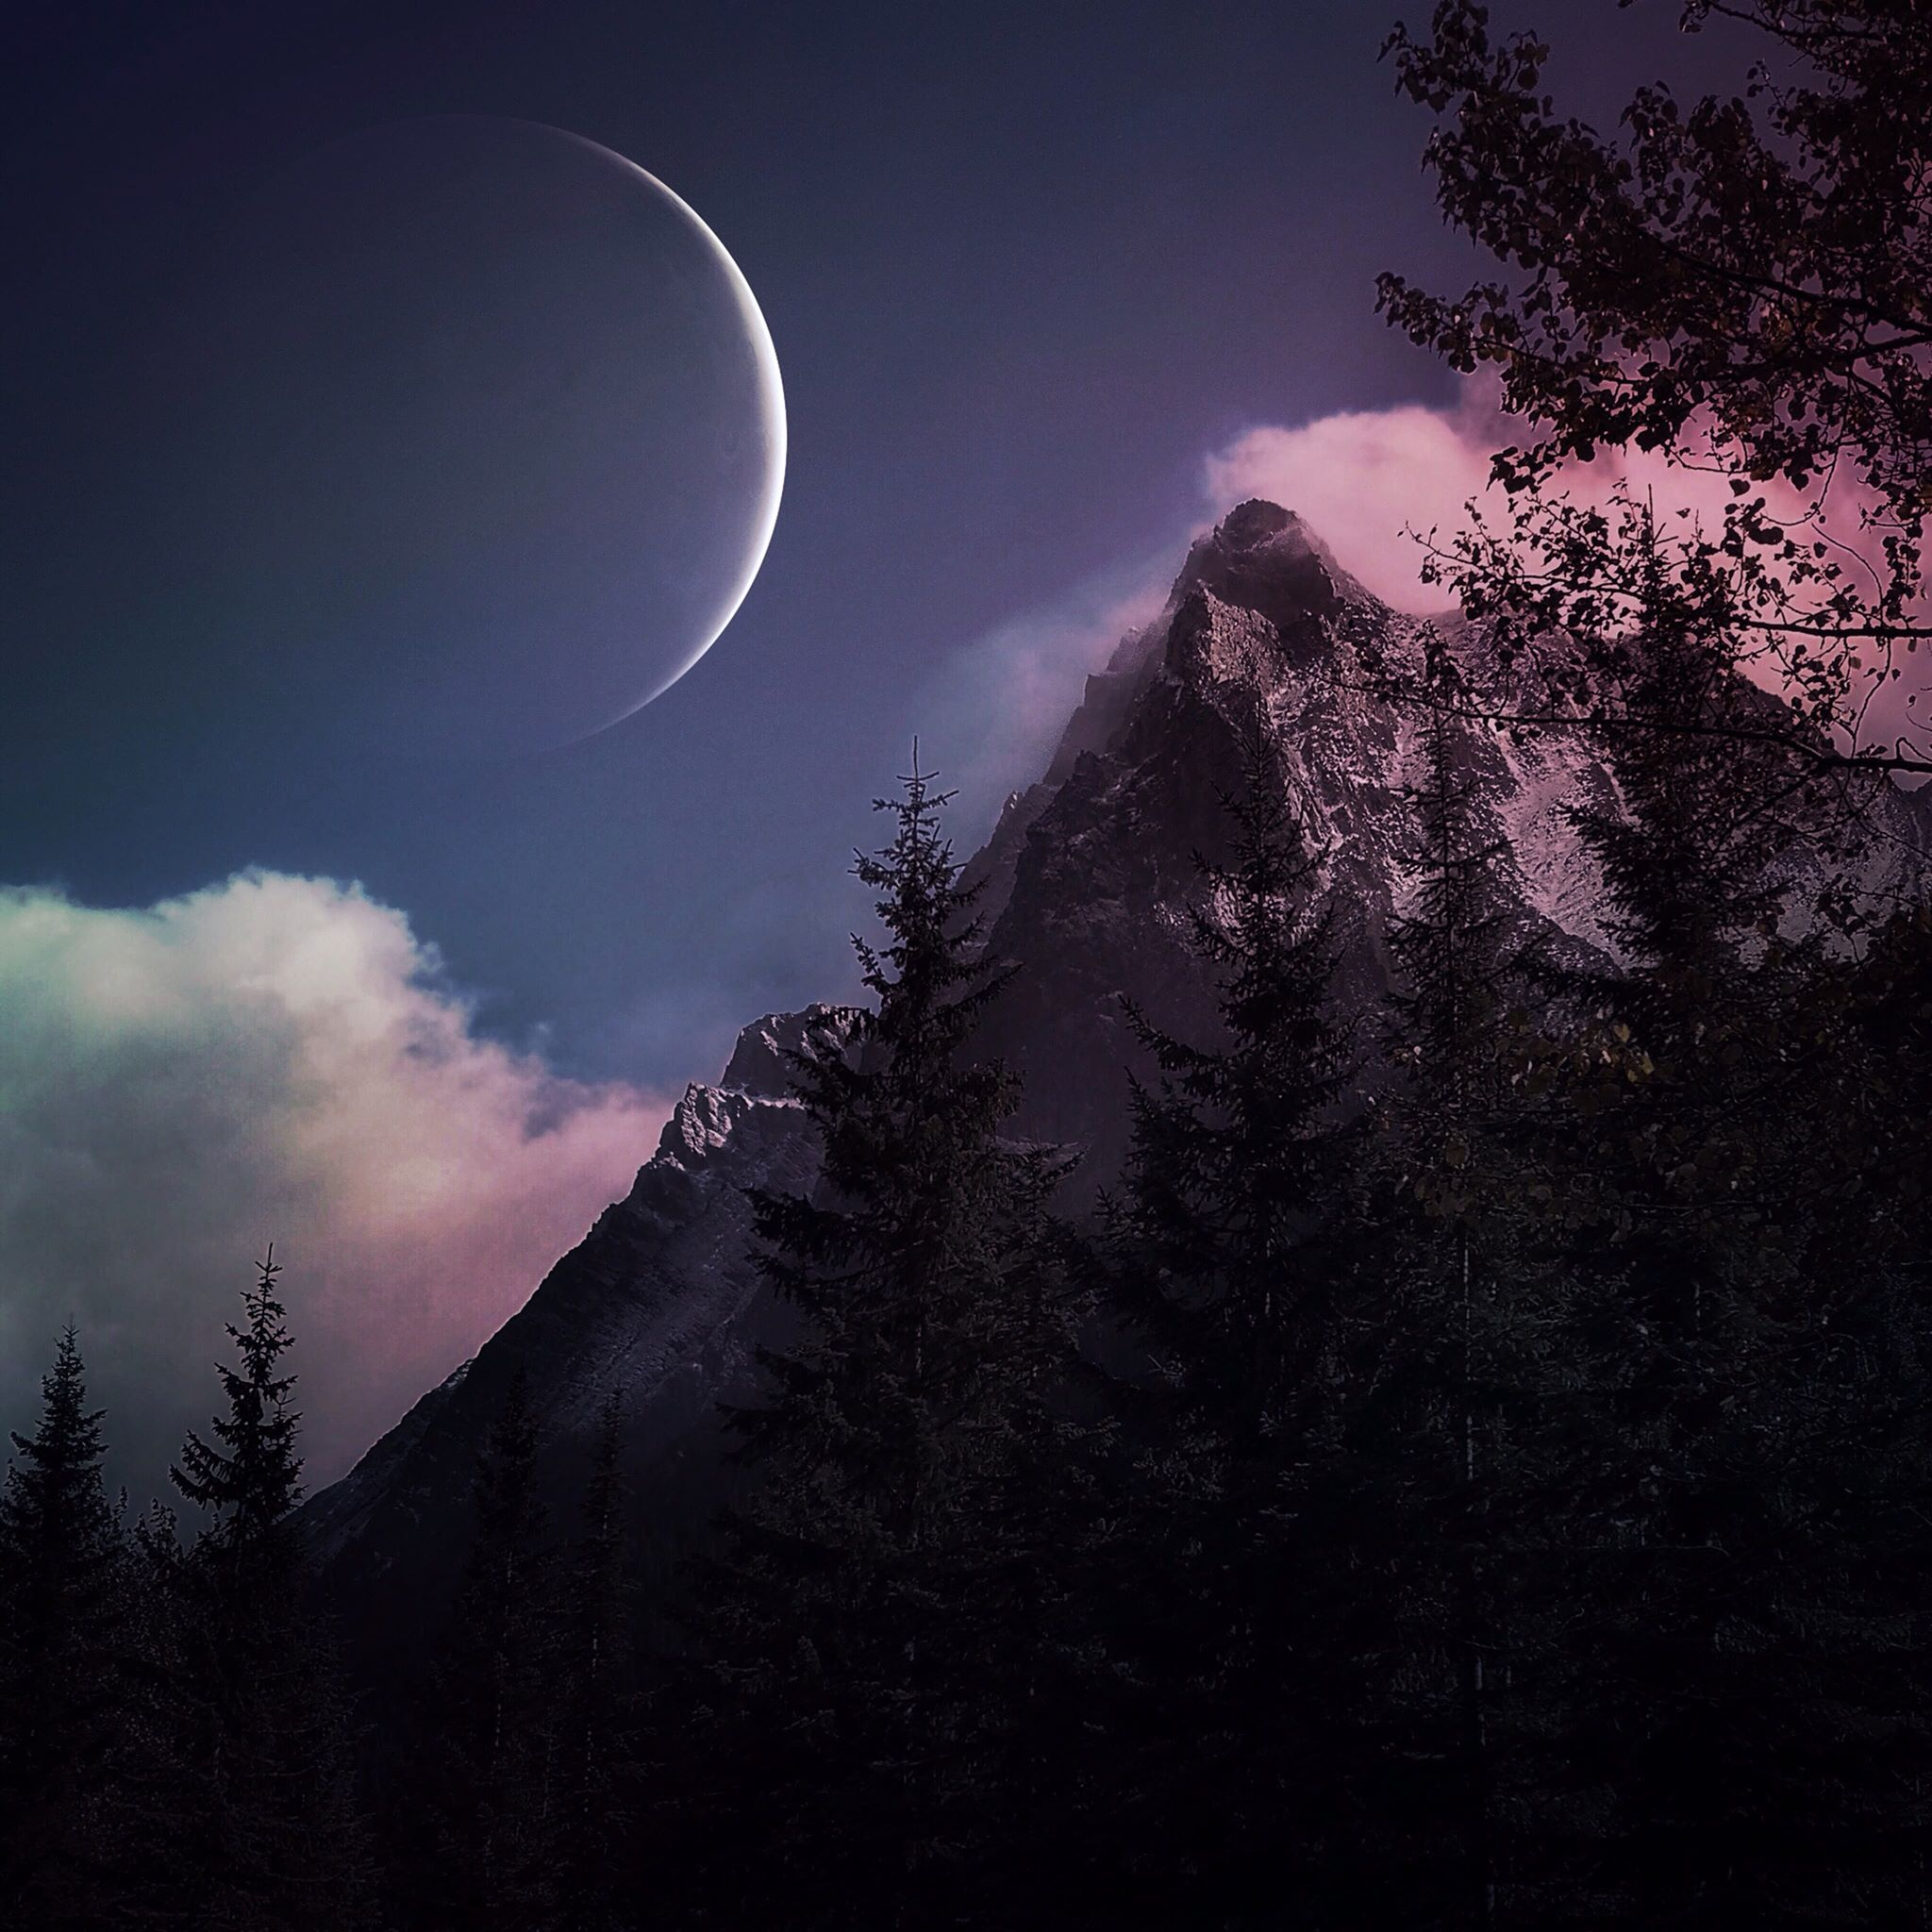 July Cancer New Moon Take Two: July 20 2020